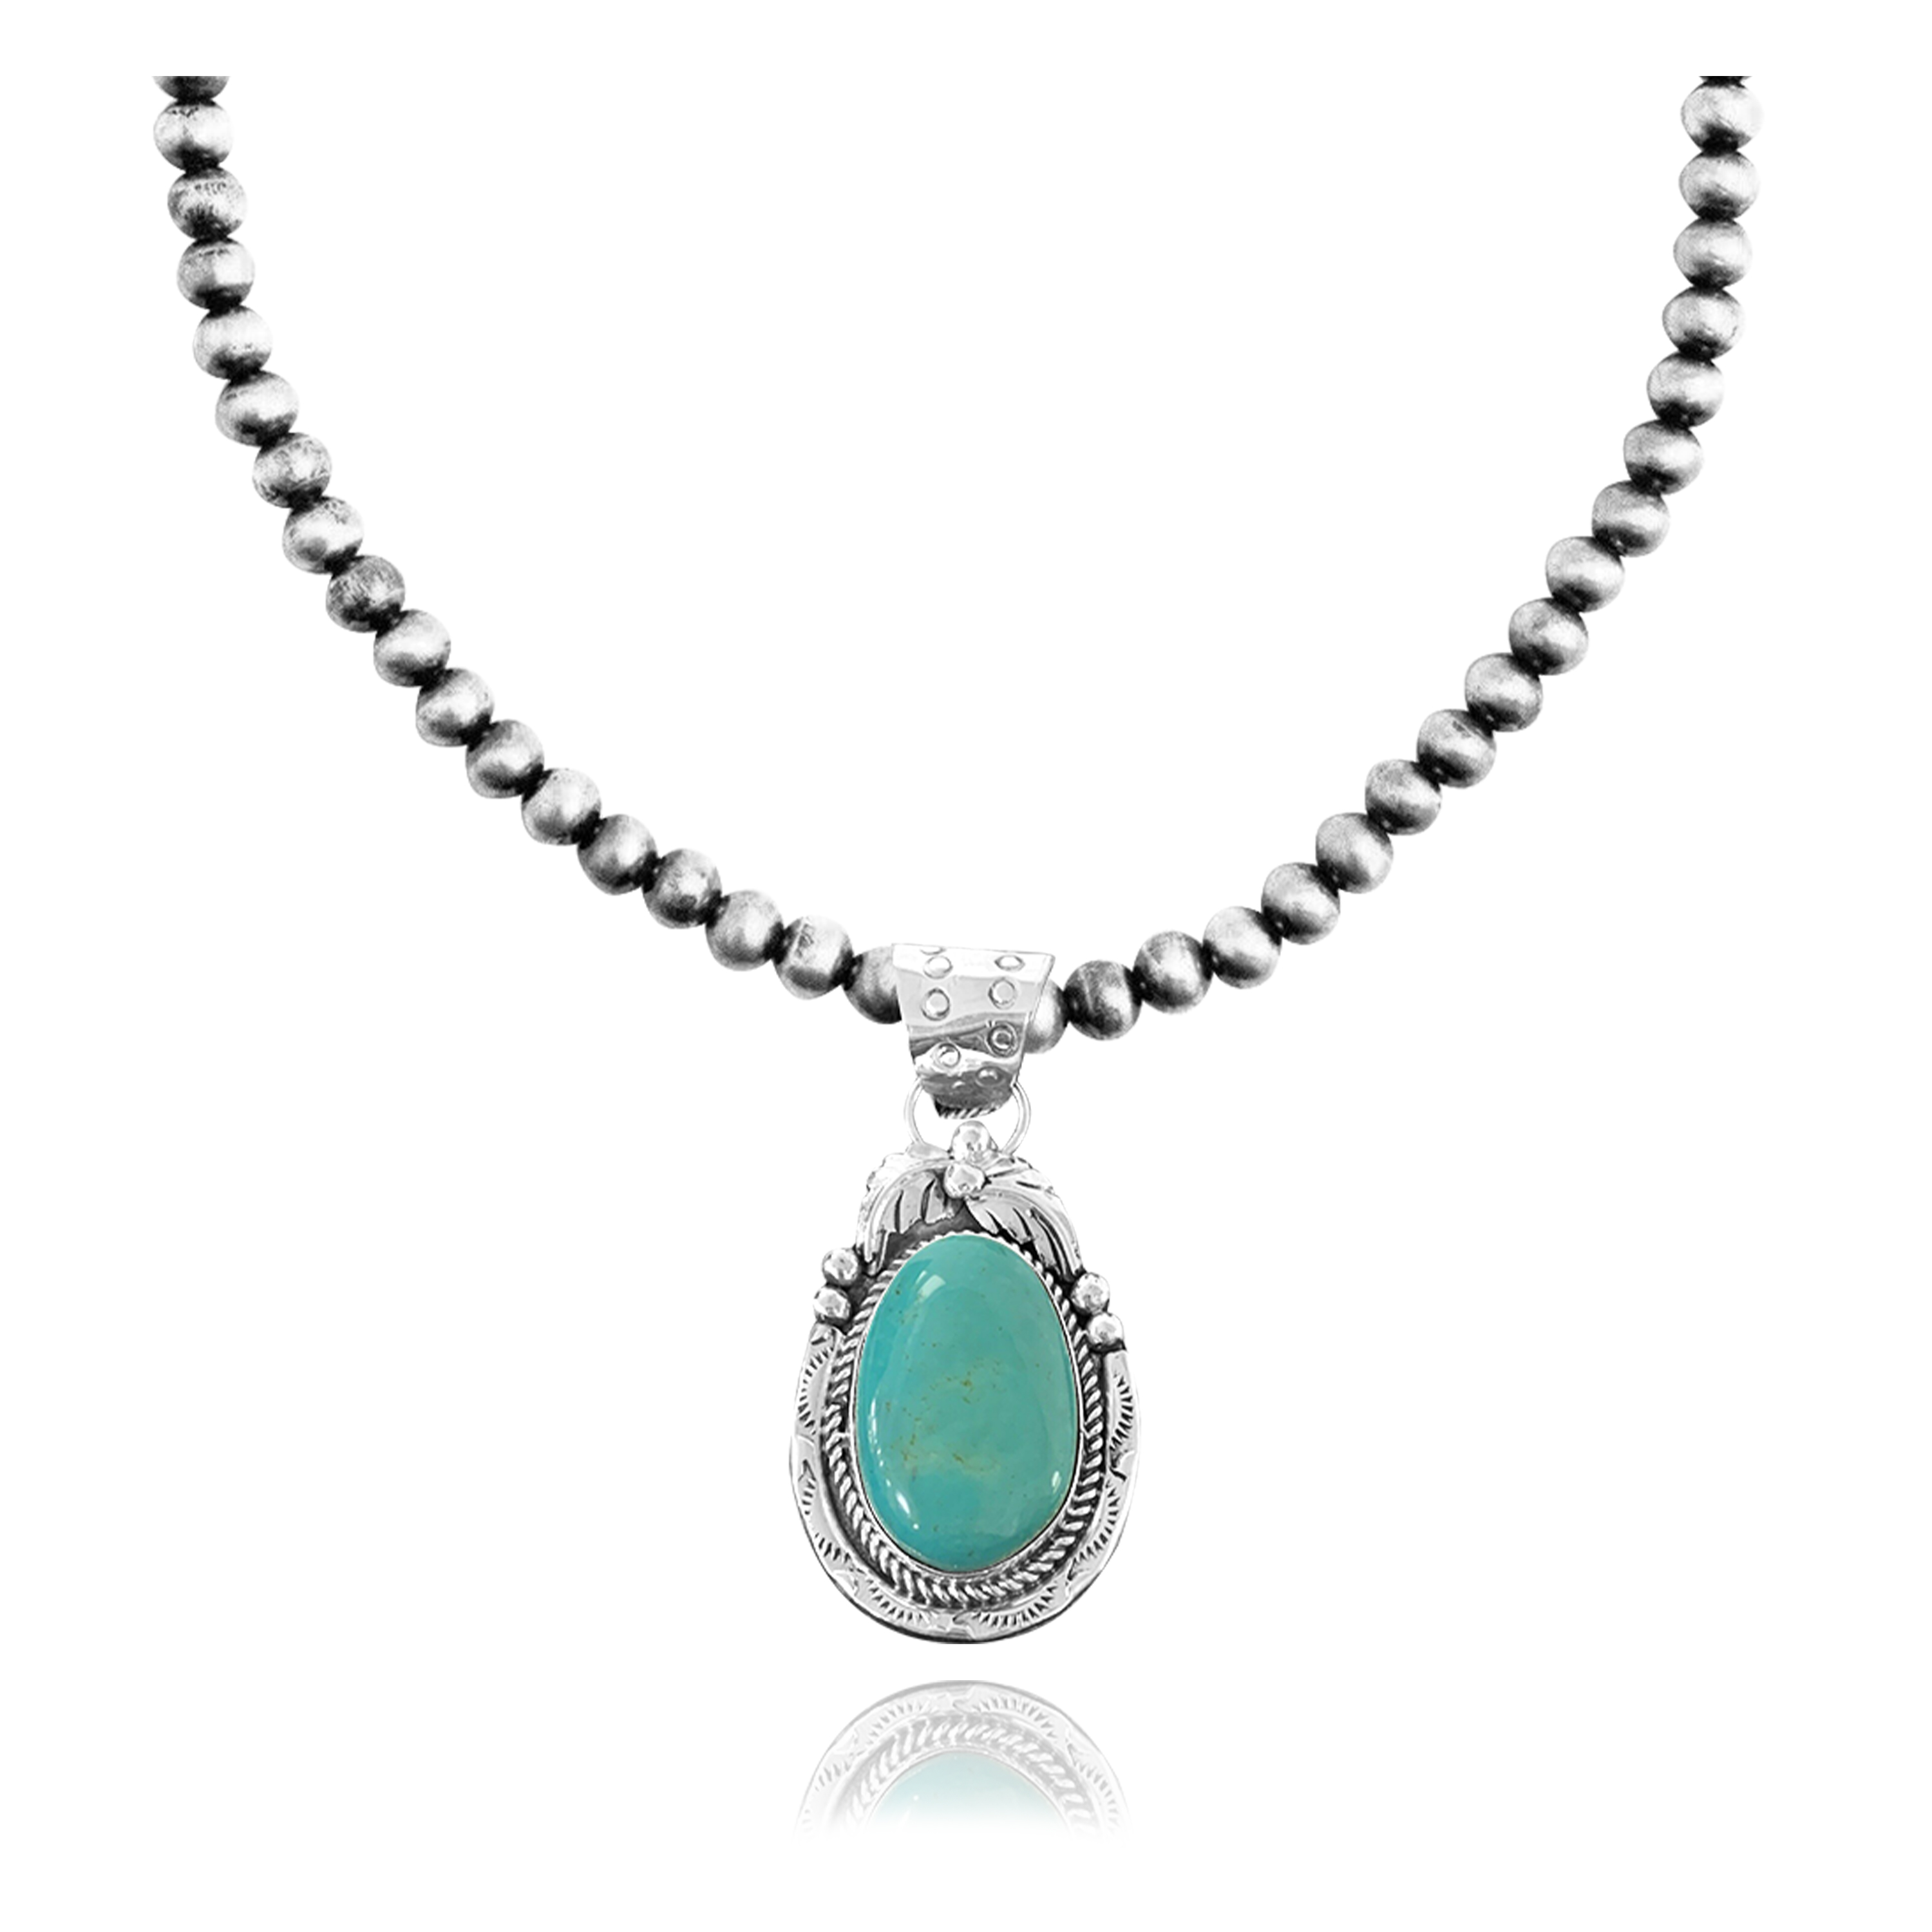 Leaf .925 Sterling Silver Certified Authentic Navajo Native American Natural Turquoise Necklace & Pendant 35174